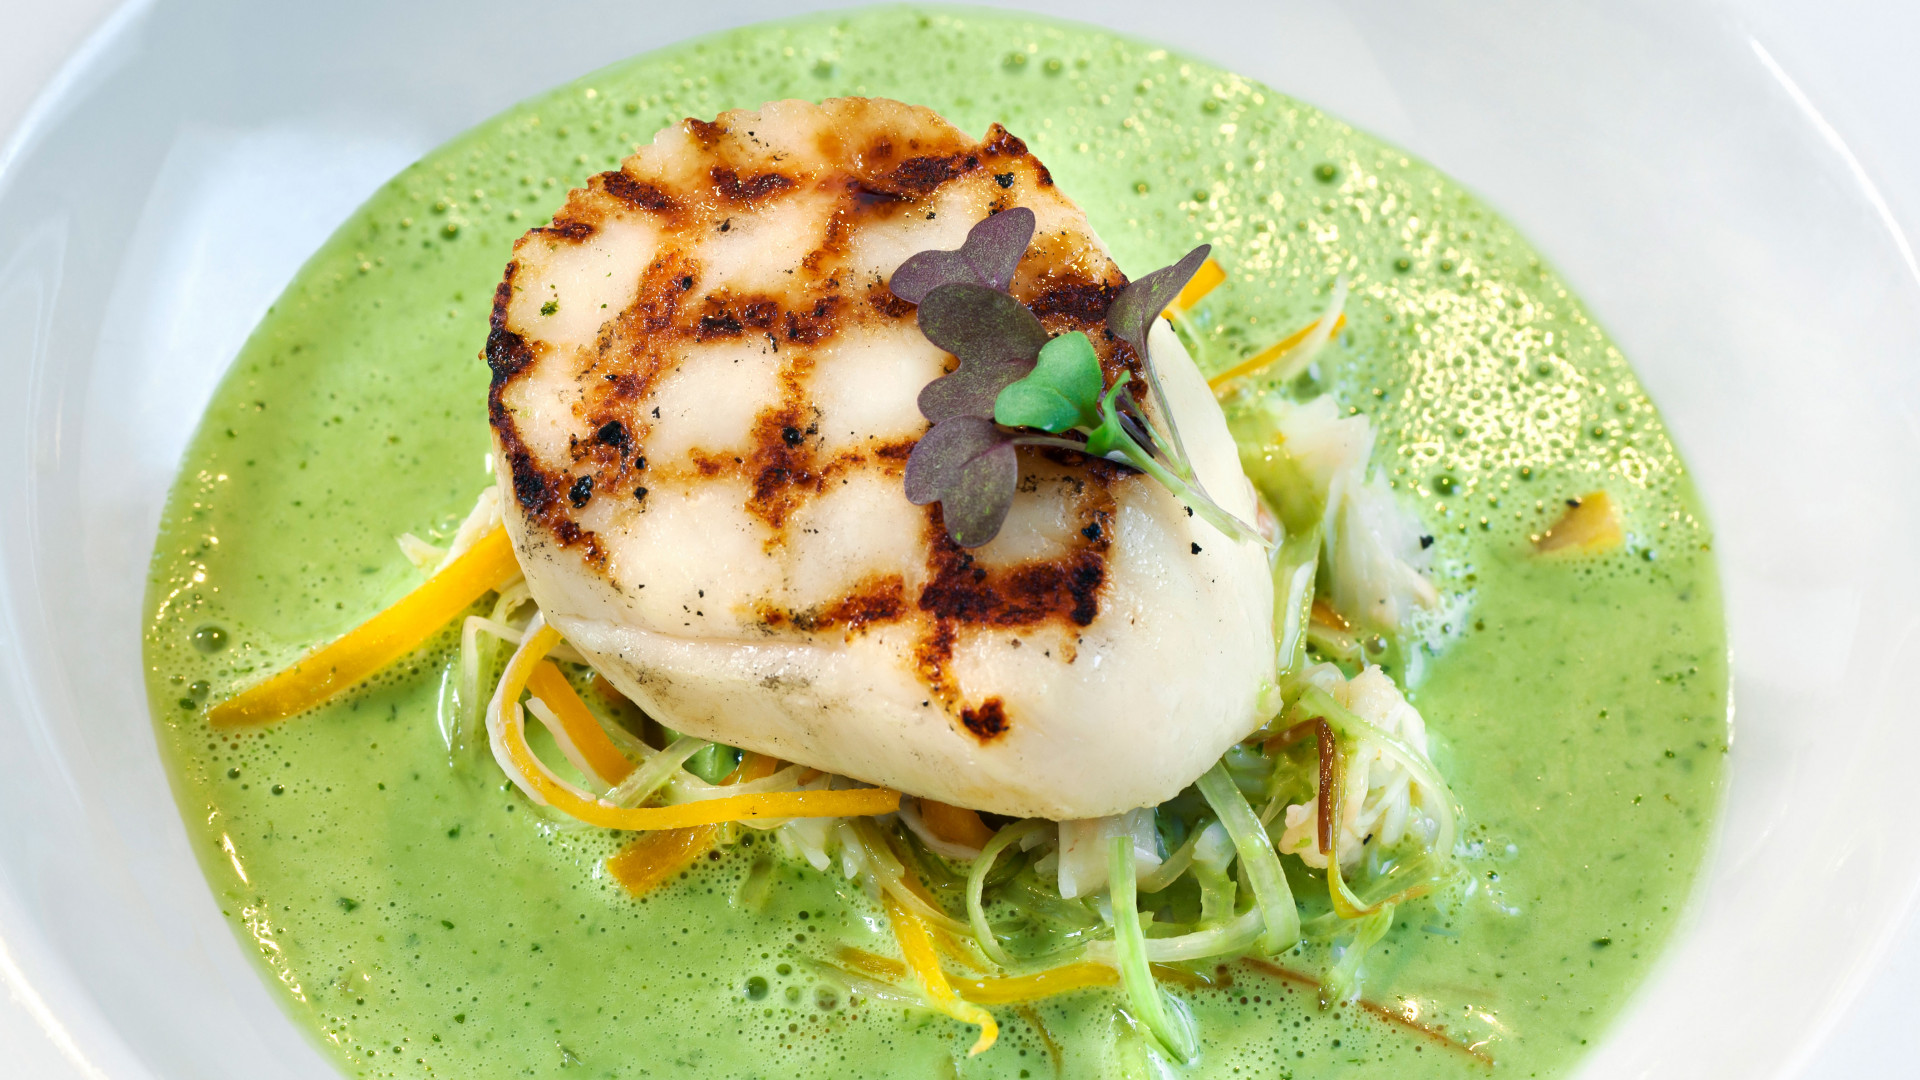 Grilled scallops with crab and herb velout